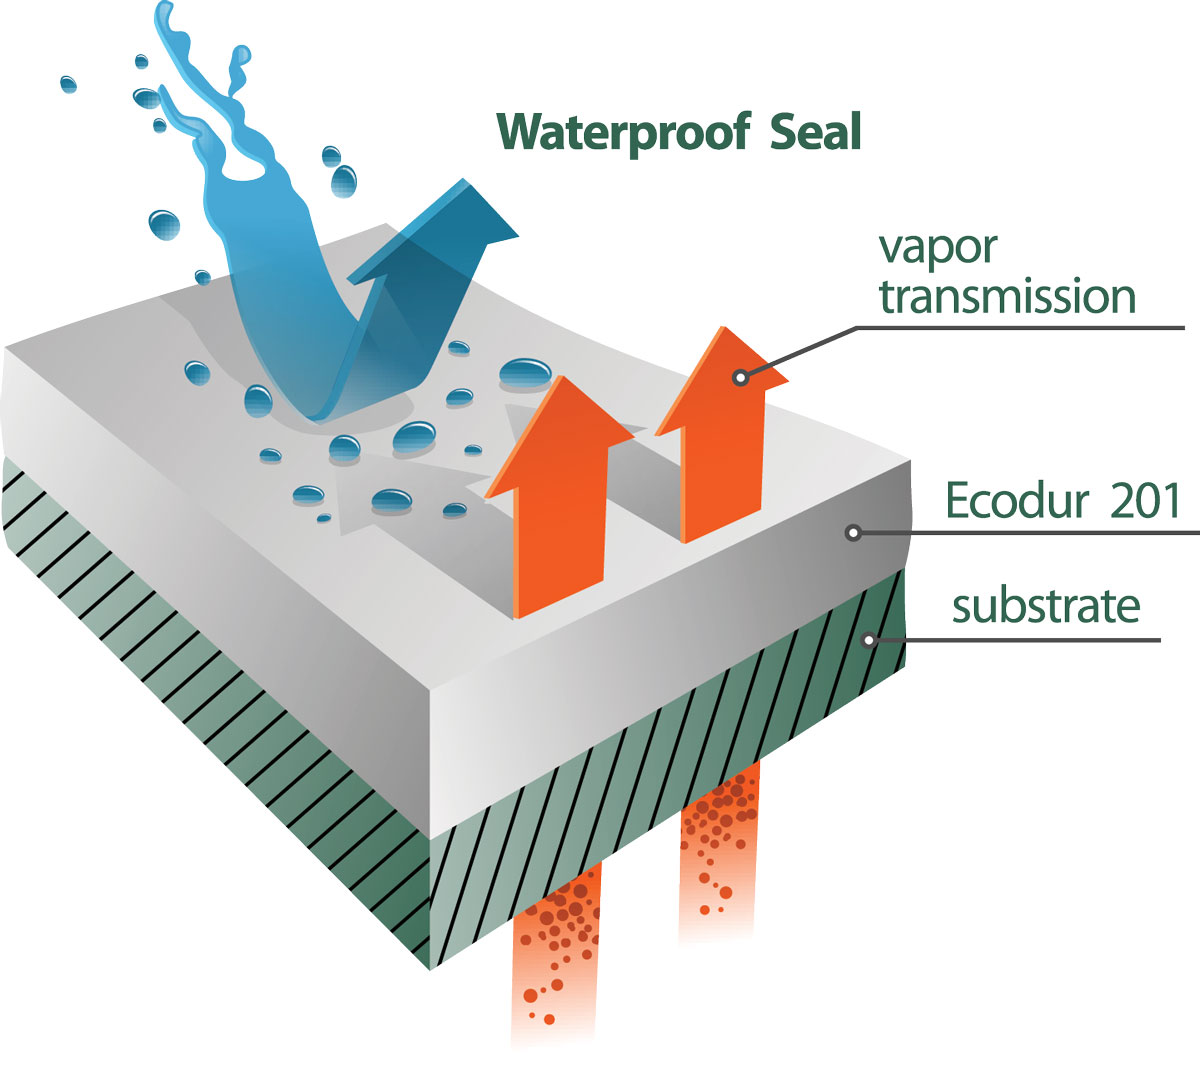 waterproof-seal